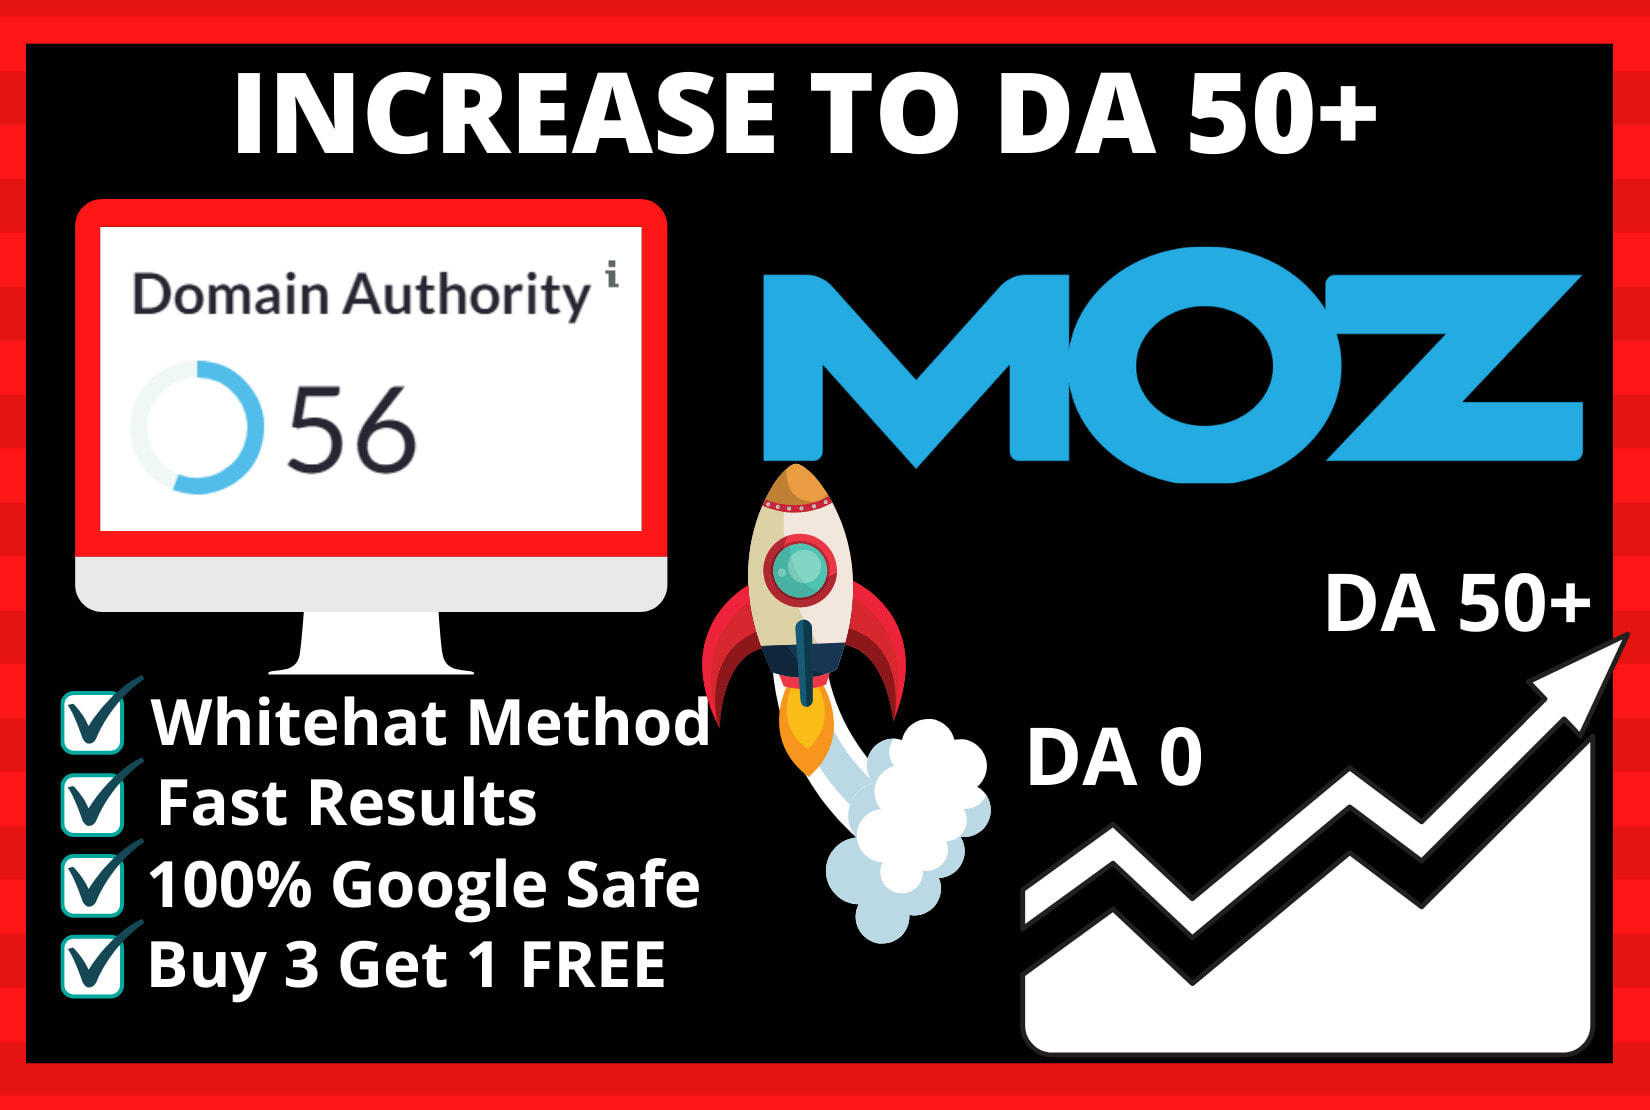 increase moz domain authority moz da up to 50 plus